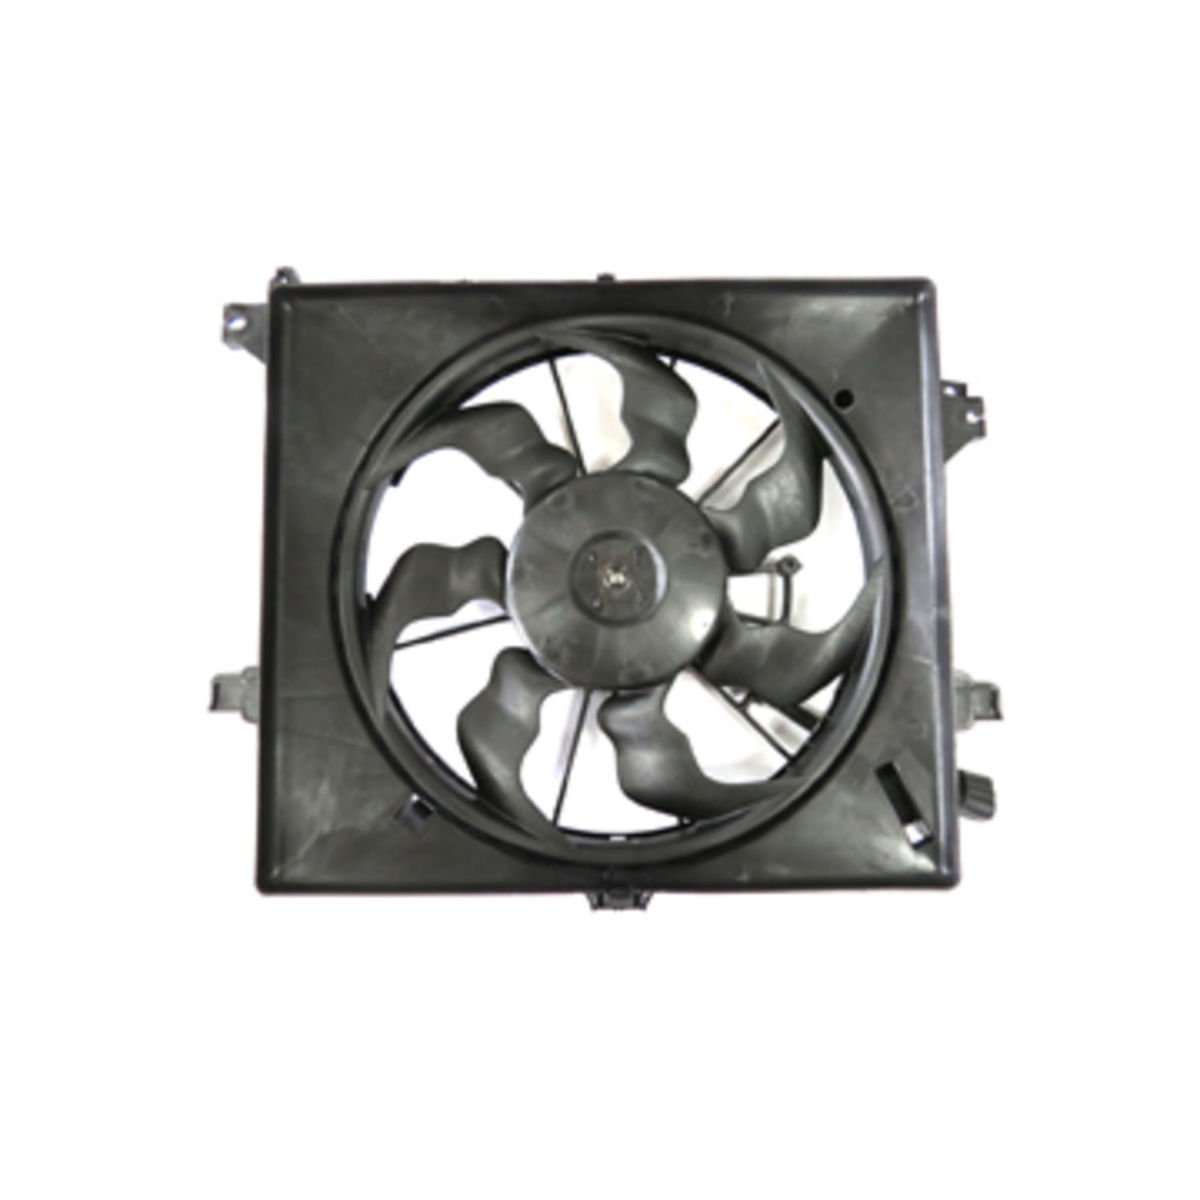 TYC 623060 Replacement Cooling Fan Assembly for Kia